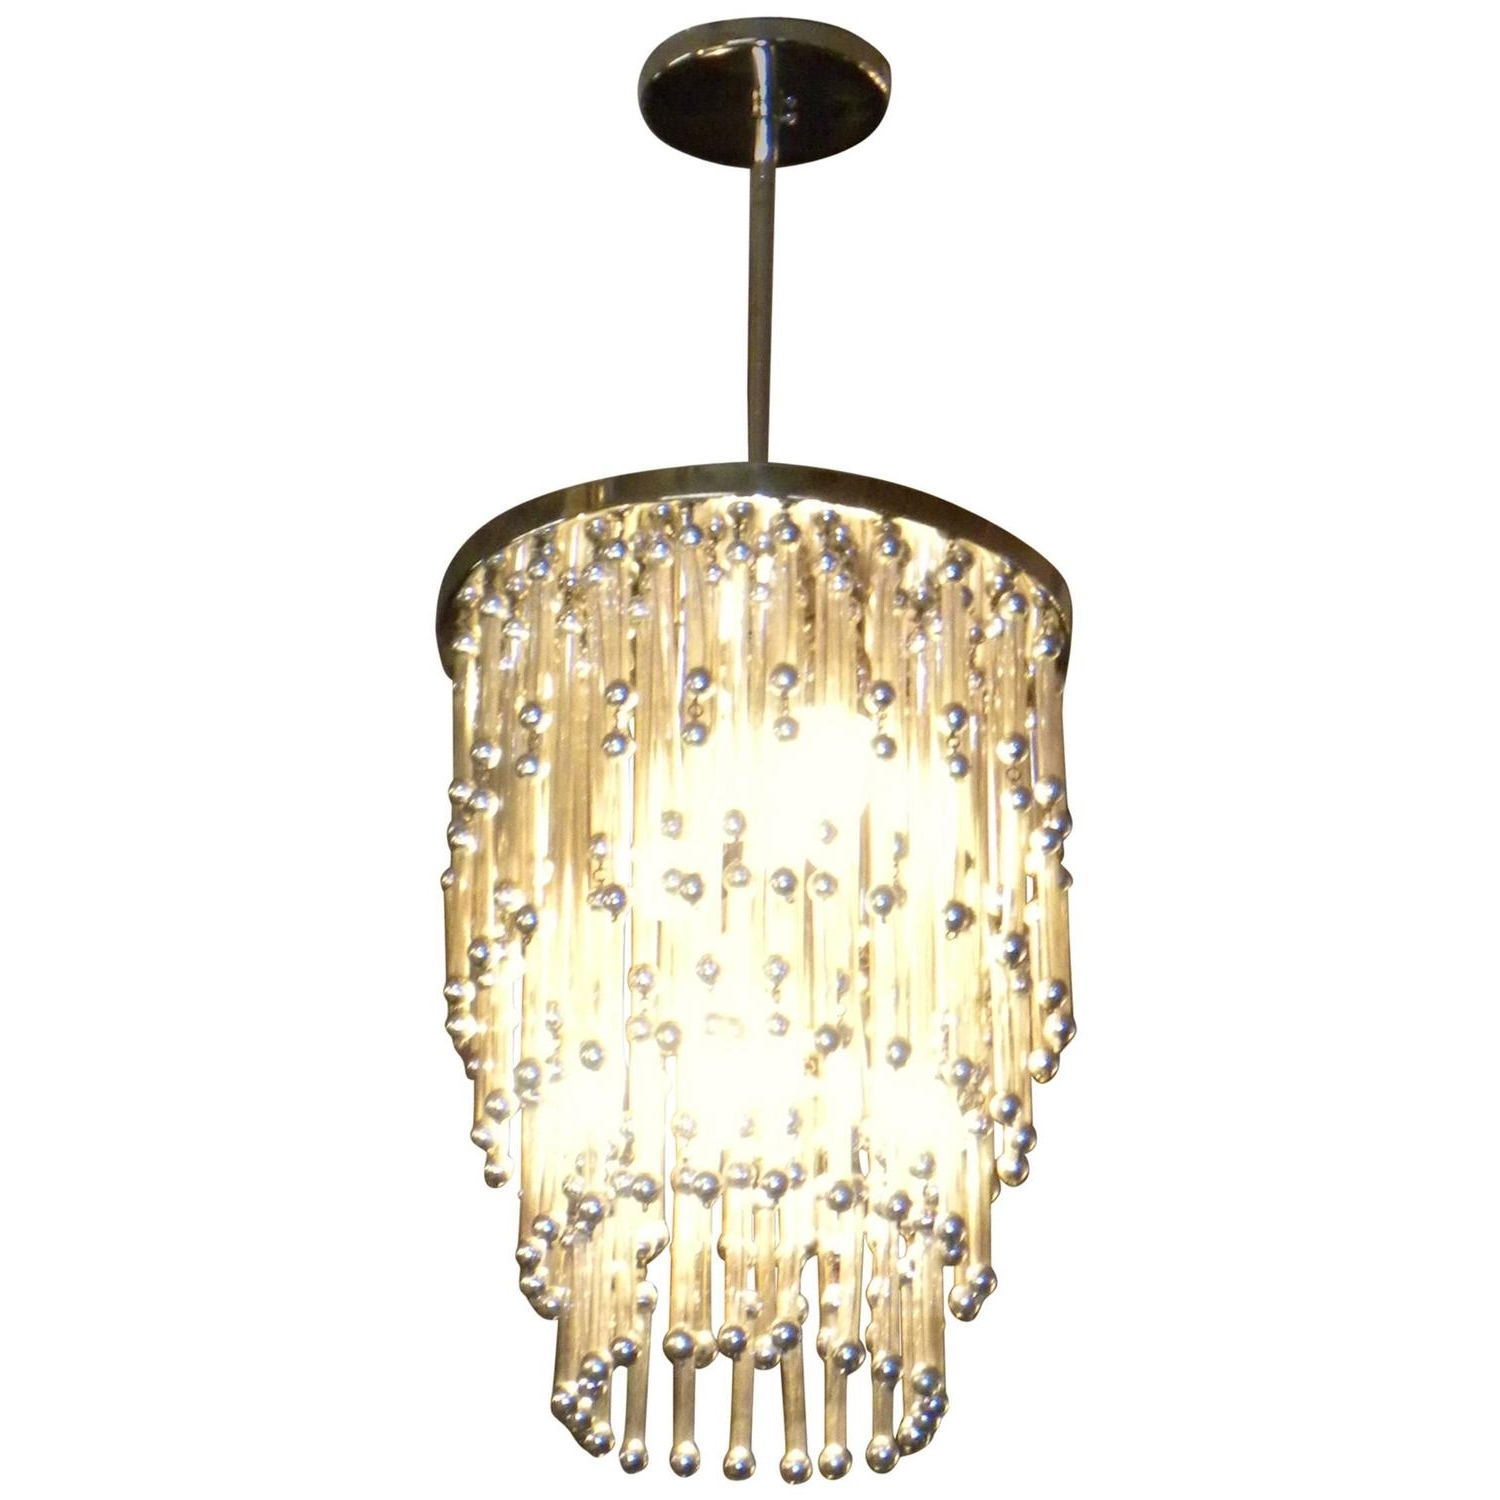 2018 Art Deco Chandeliers For Art Deco Lighting For Sale (View 1 of 20)